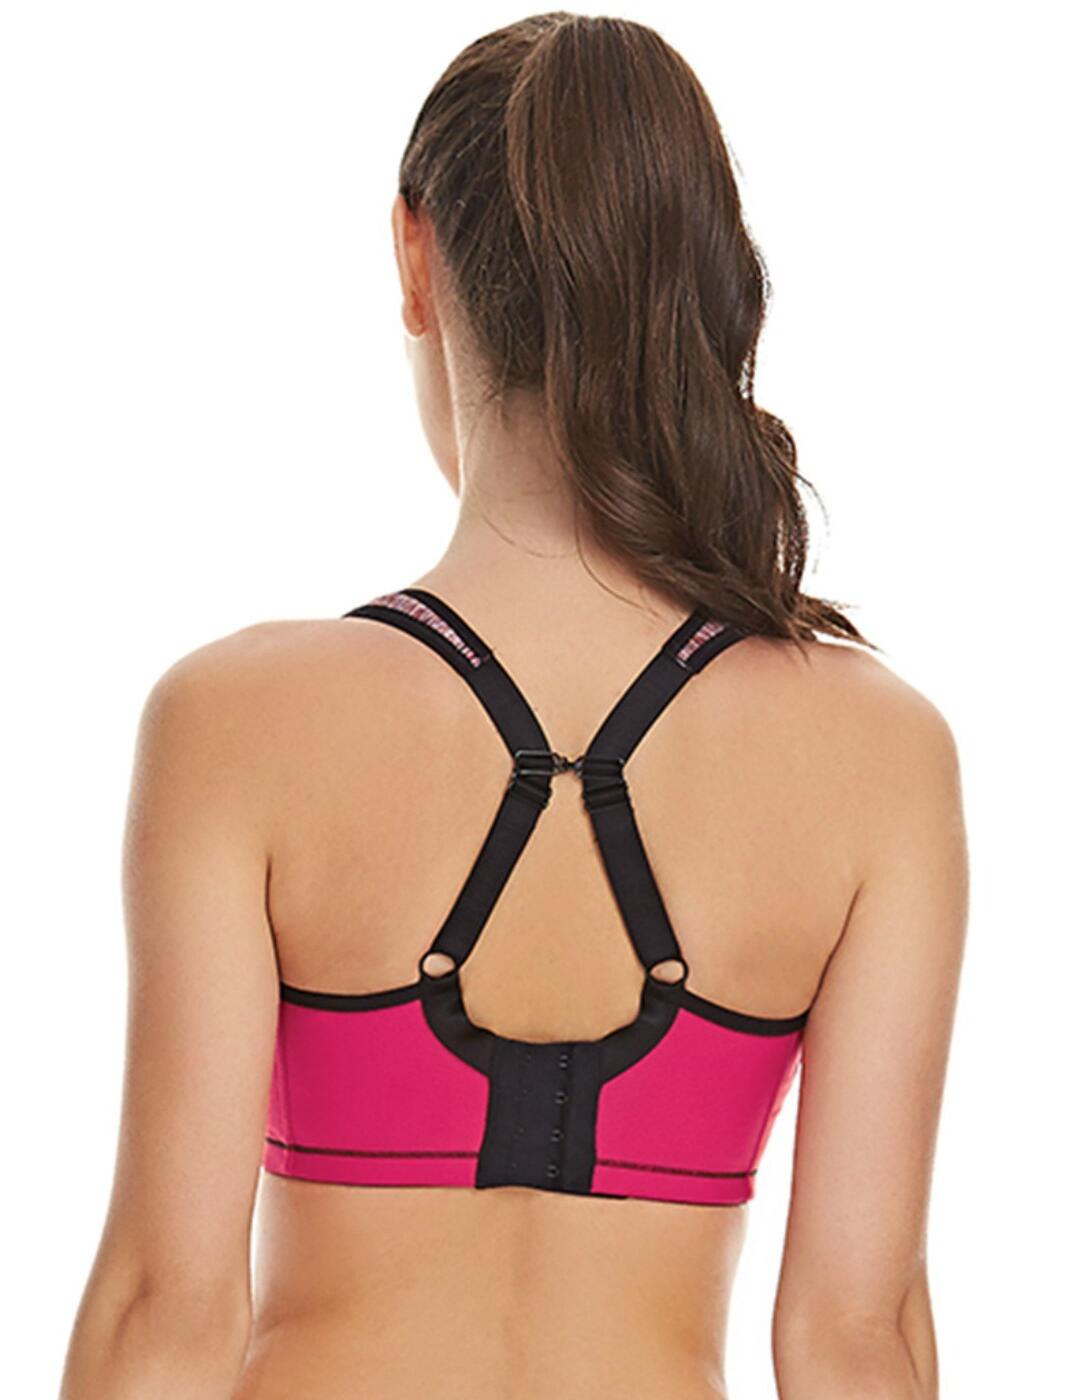 Freya-Active-Sonic-Sports-Bra-4892-Underwired-High-Impact-Gym-Workout-Bras thumbnail 6